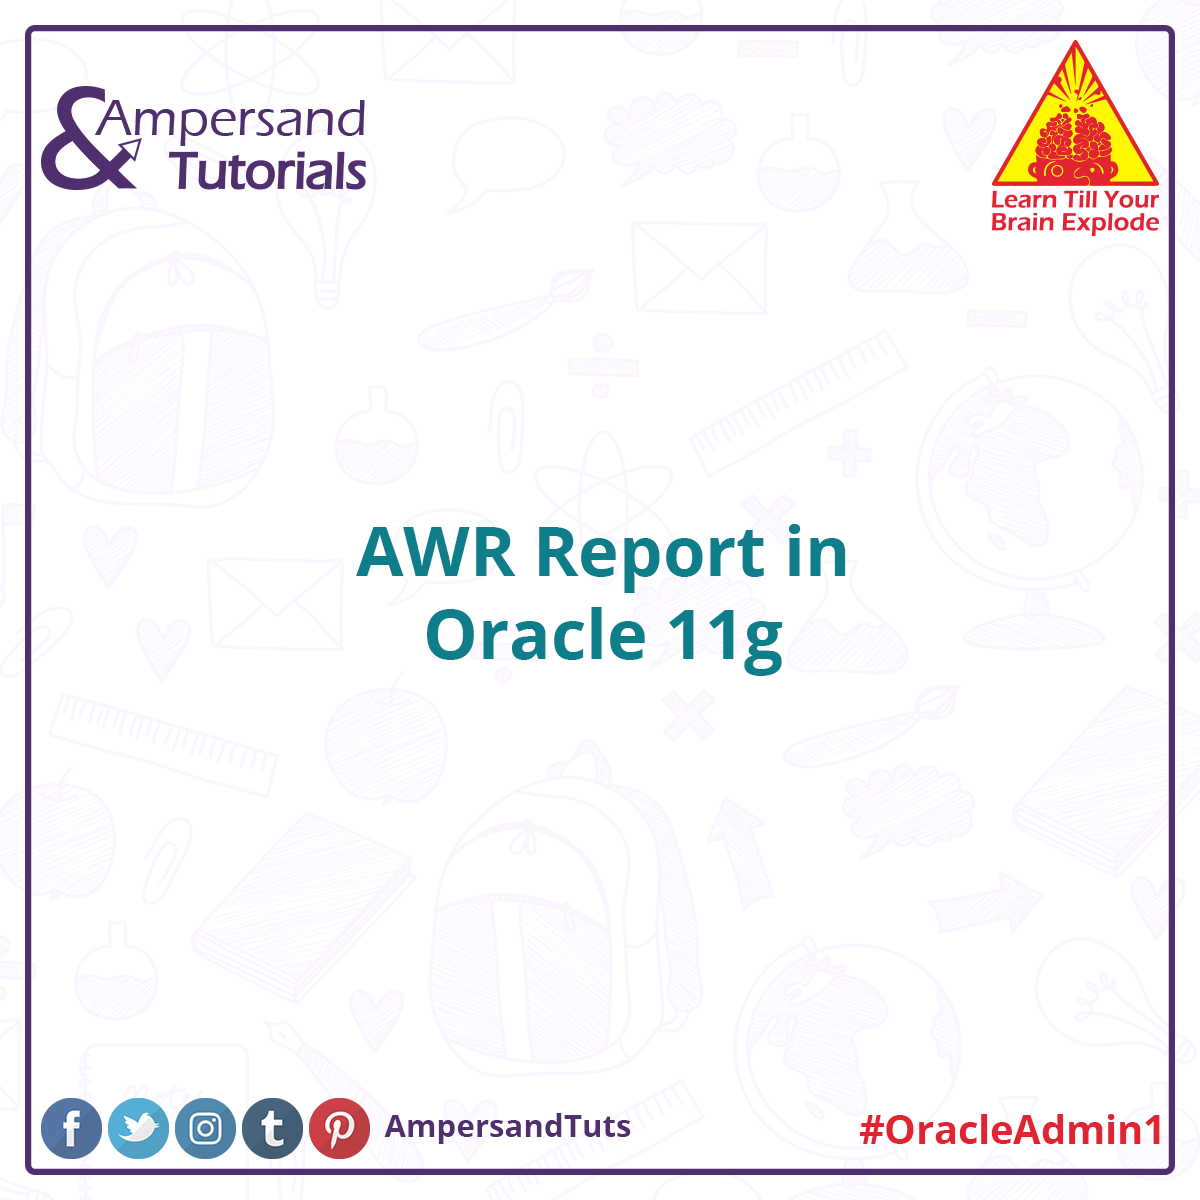 Awr report in oracle 11g ampersandtutorials oracle oracledba awr report in oracle 11g ampersandtutorials oracle oracledba oracleadmin oracle11g baditri Gallery